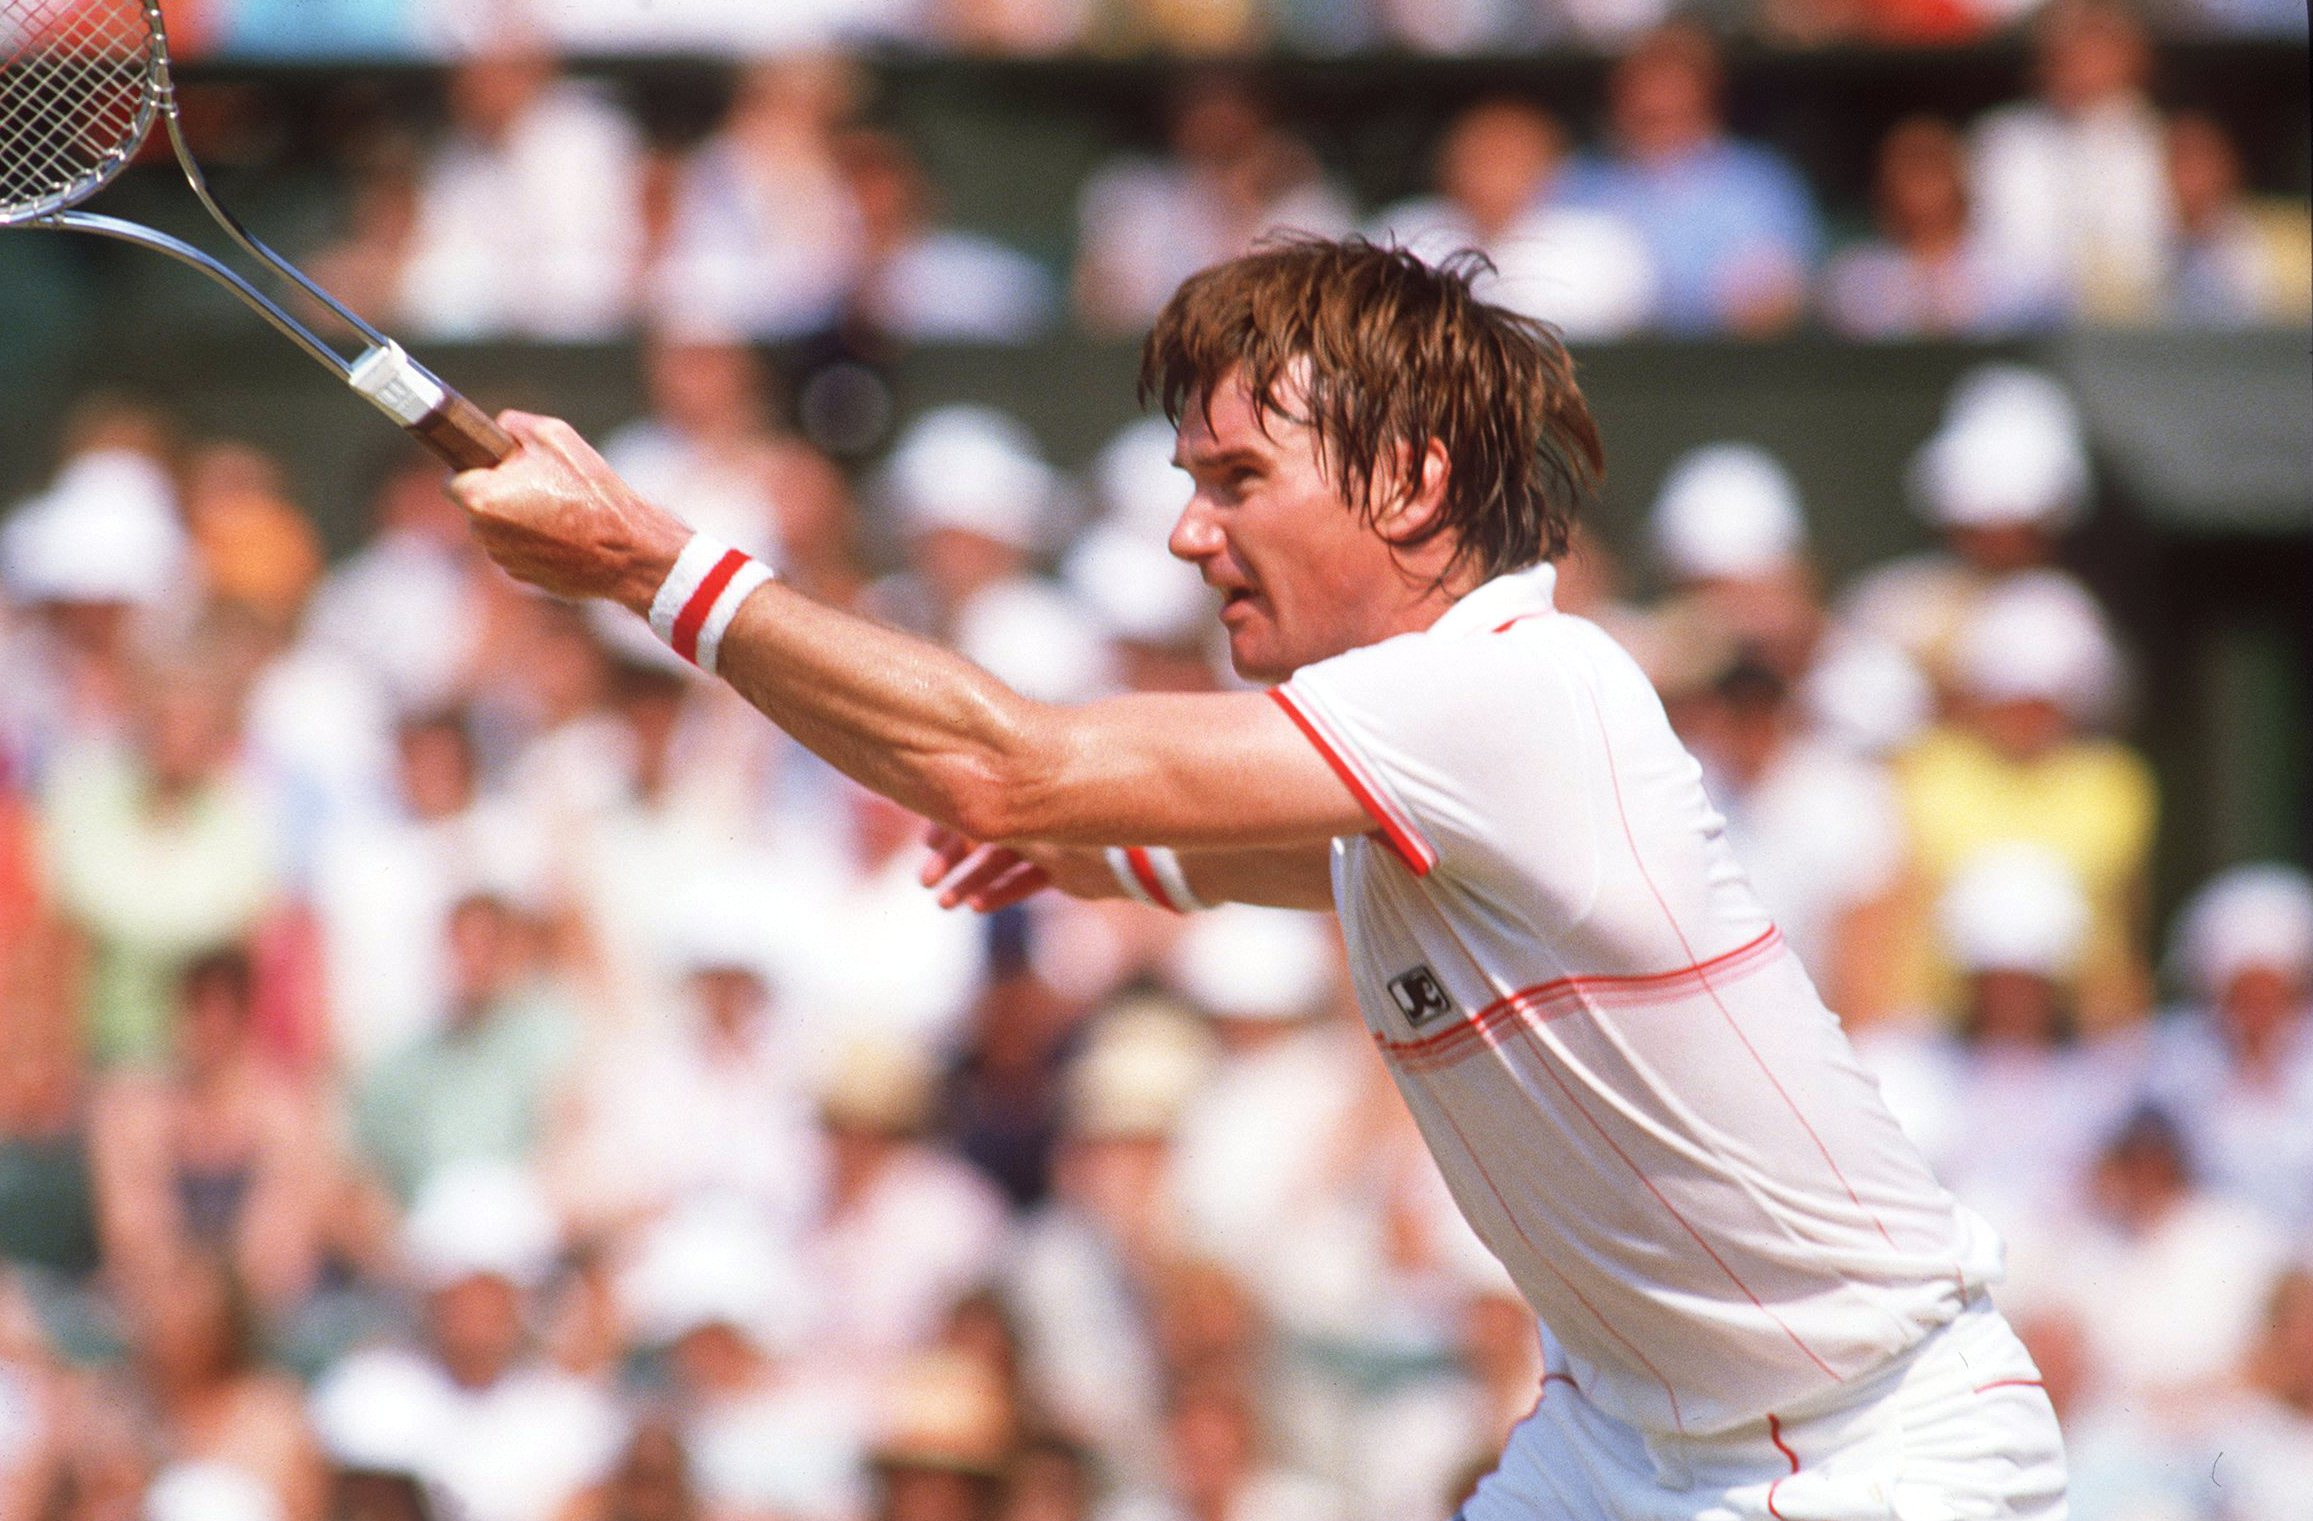 Jimmy Connors plays John McEnroe in 1984 Wimbledon